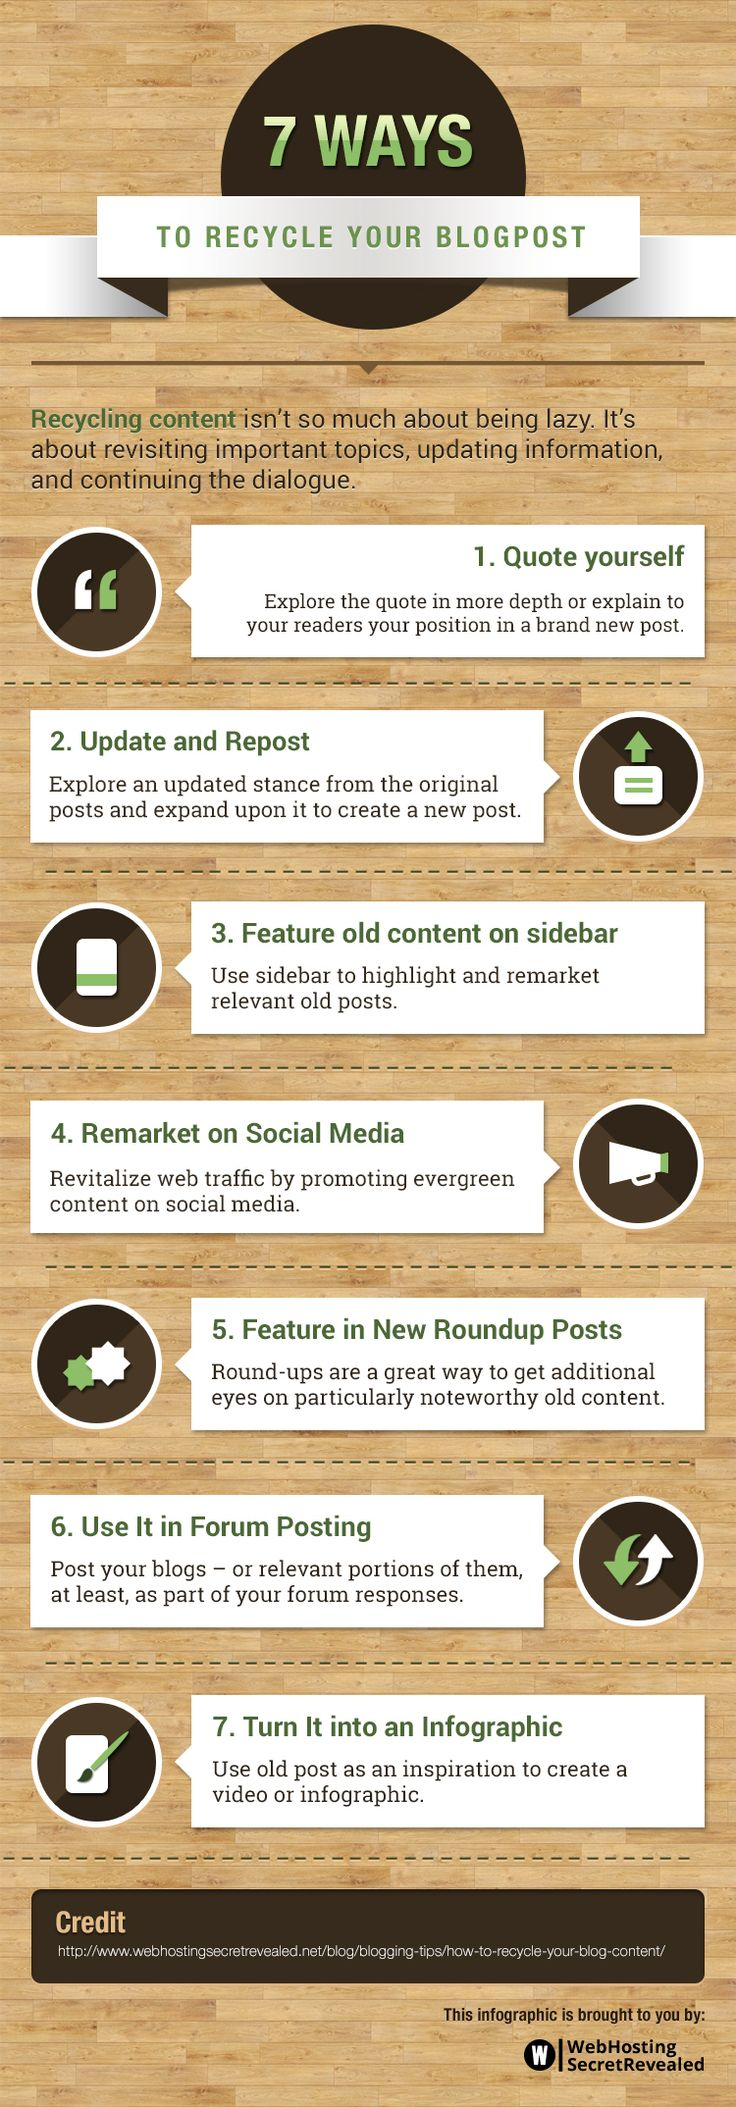 7 Easy Ways to Recycle Your Blogposts